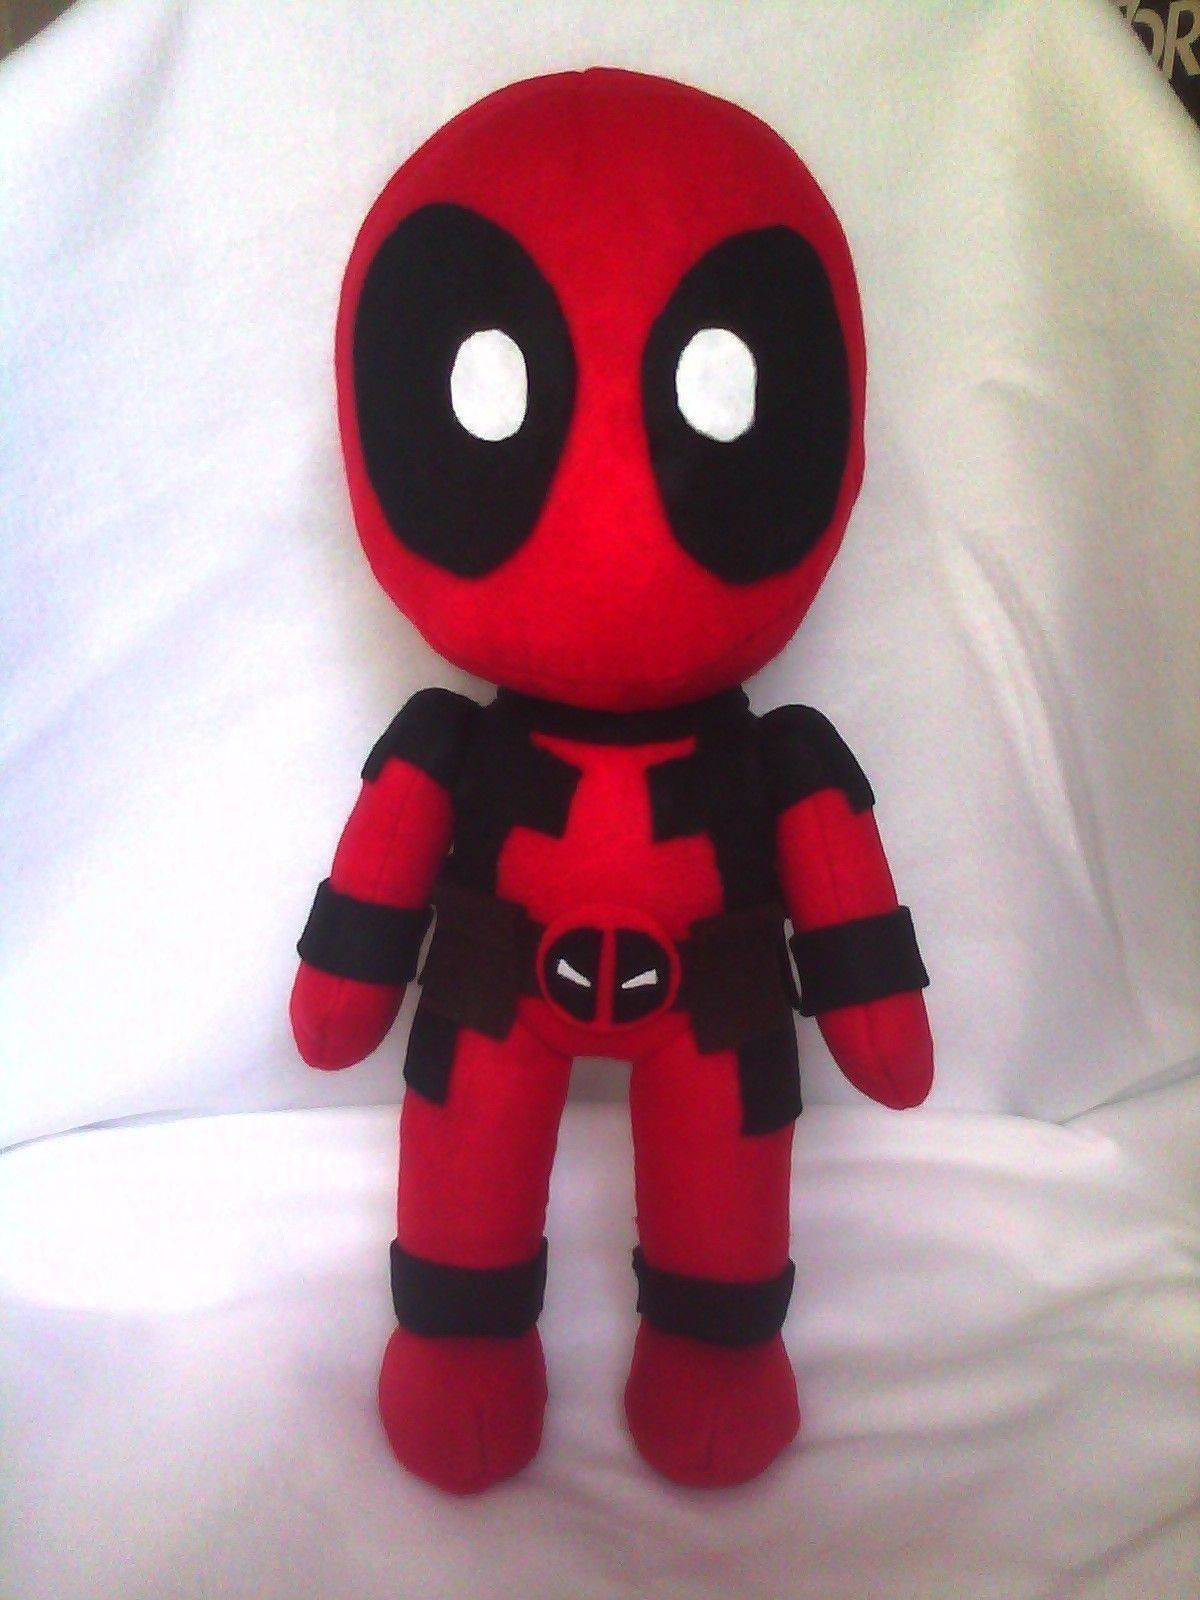 Deadpool Bettwäsche Deadpool Plushie Stuffed And Things Plushies Deadpool Plush